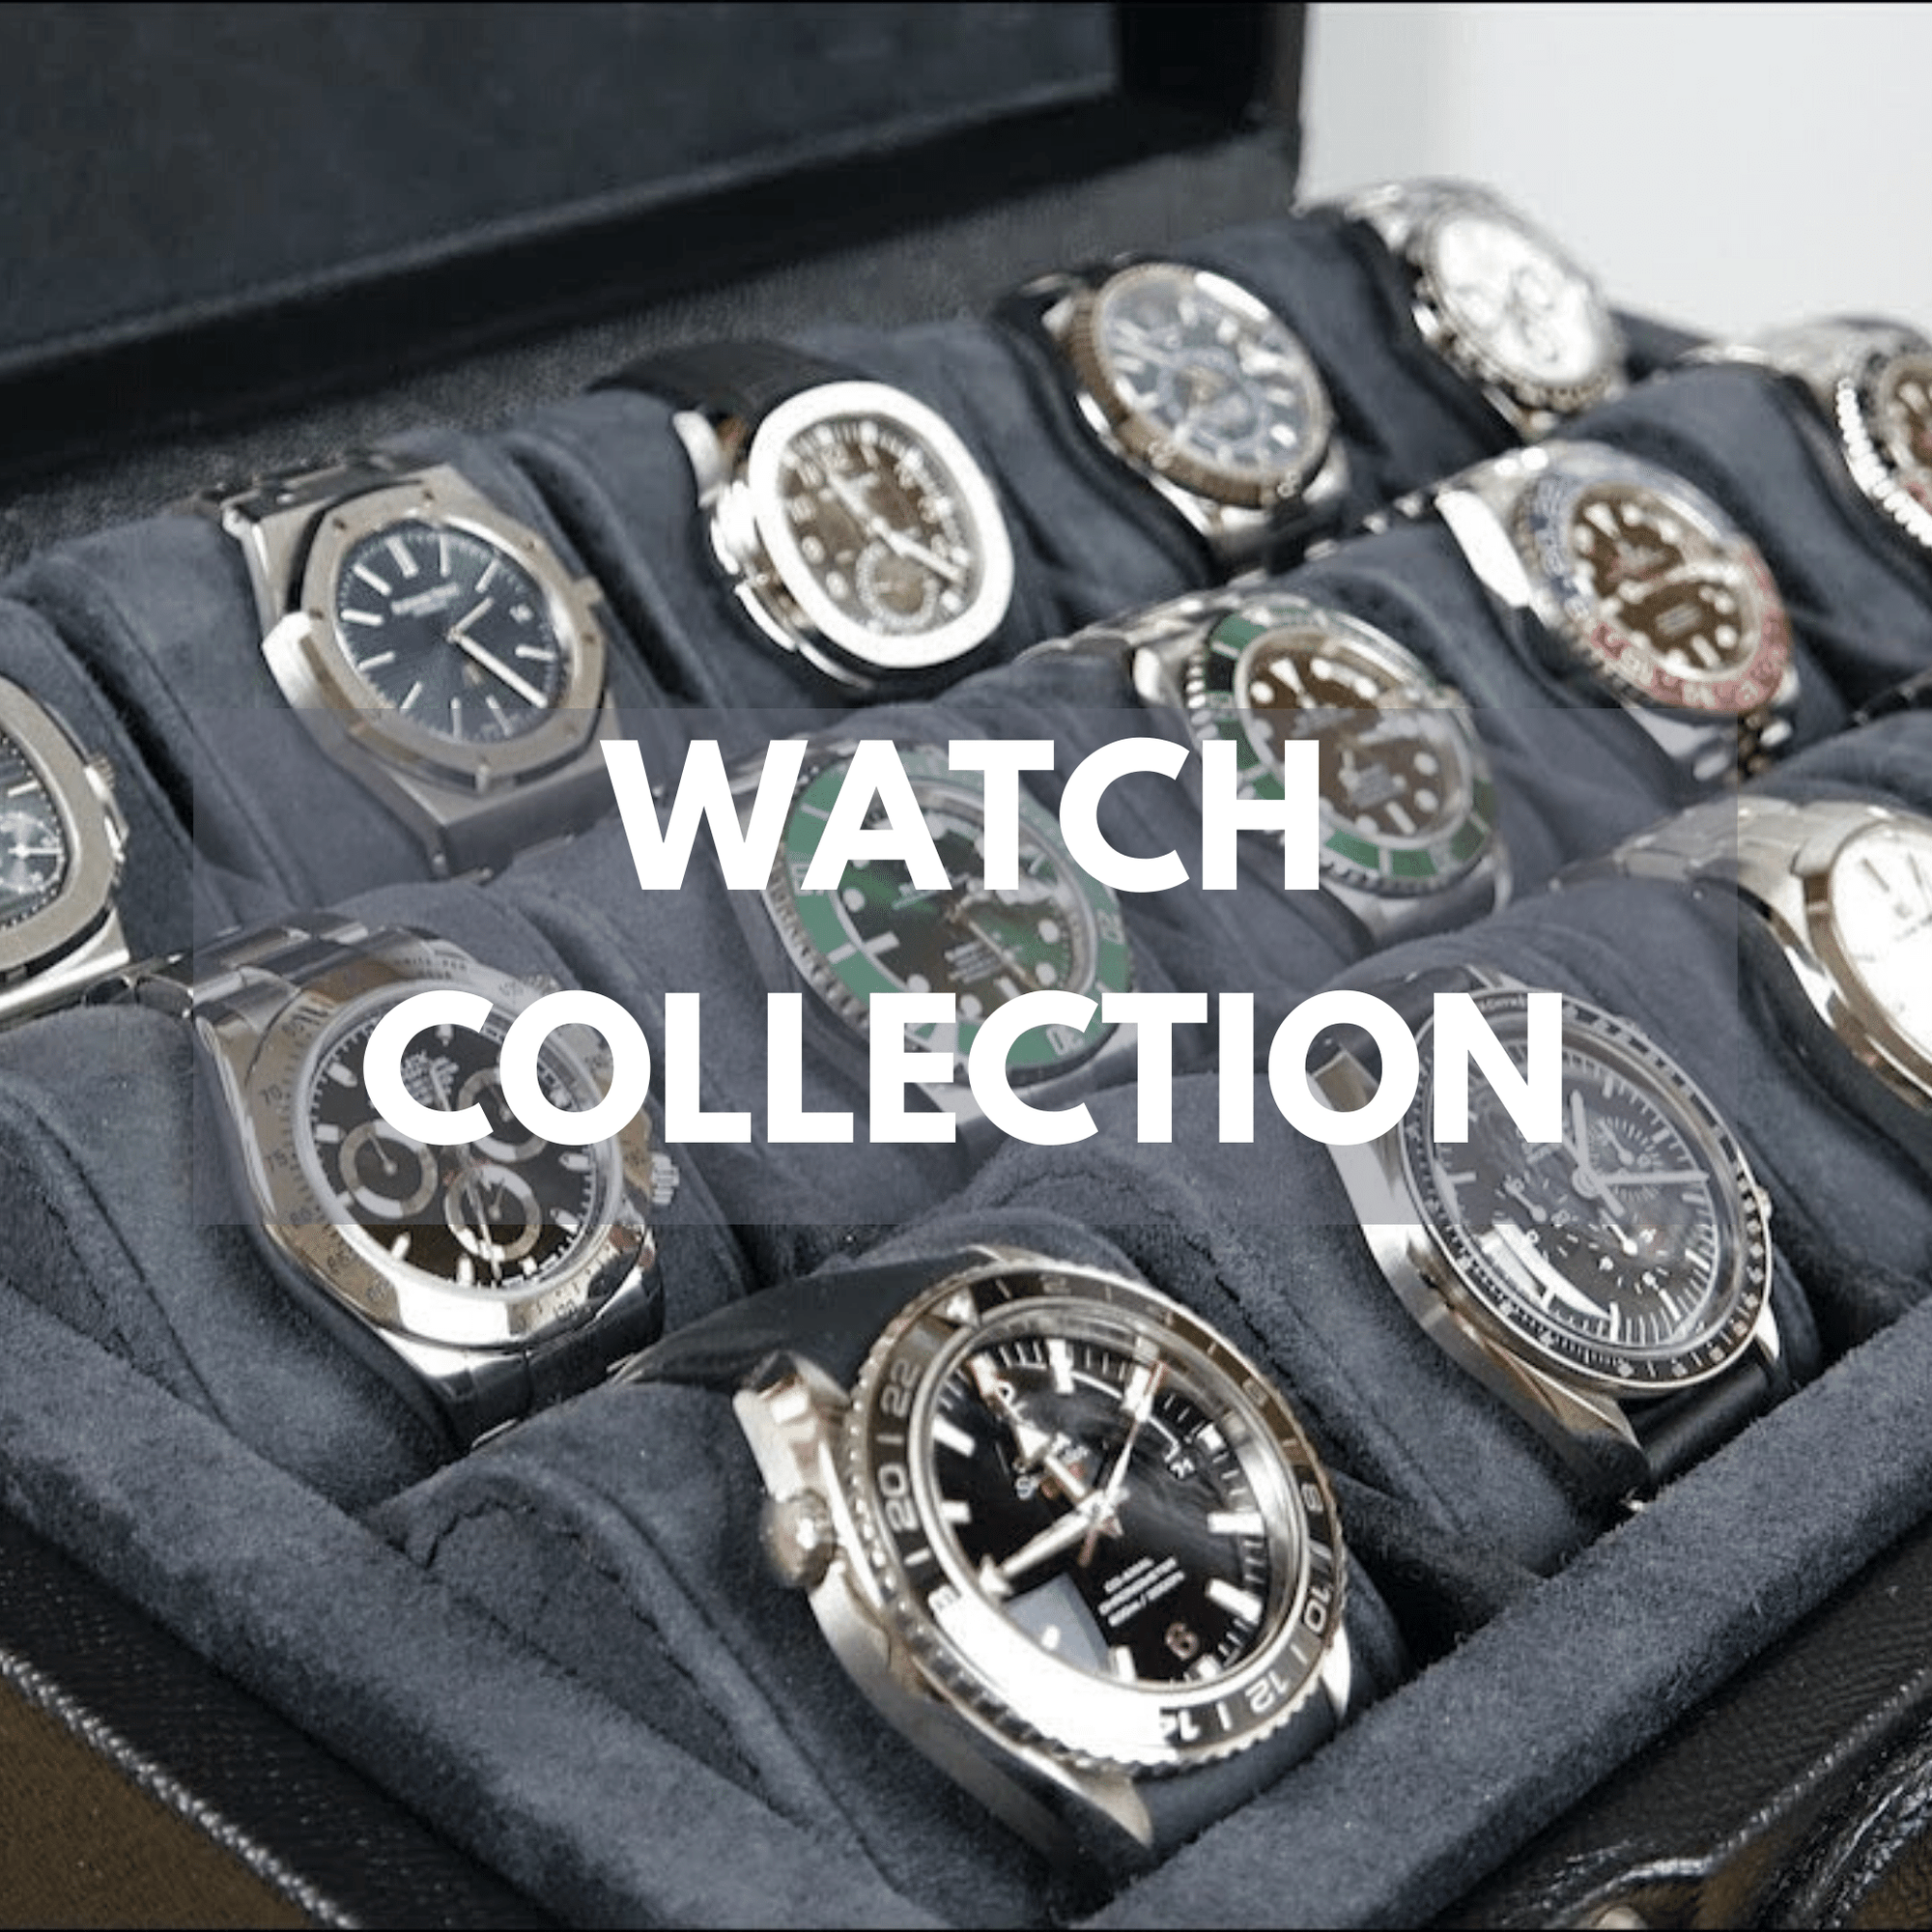 watches in a watch case